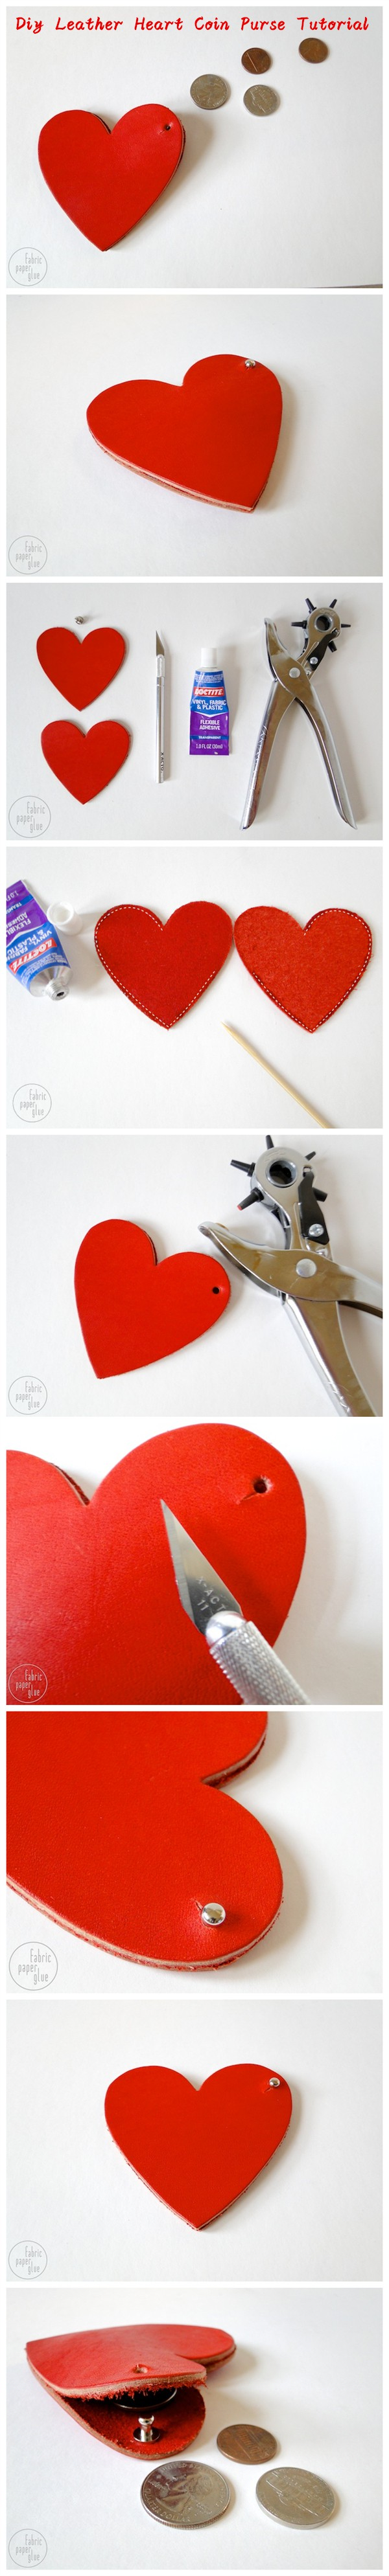 Diy Leather Heart Coin Purse Tutorial